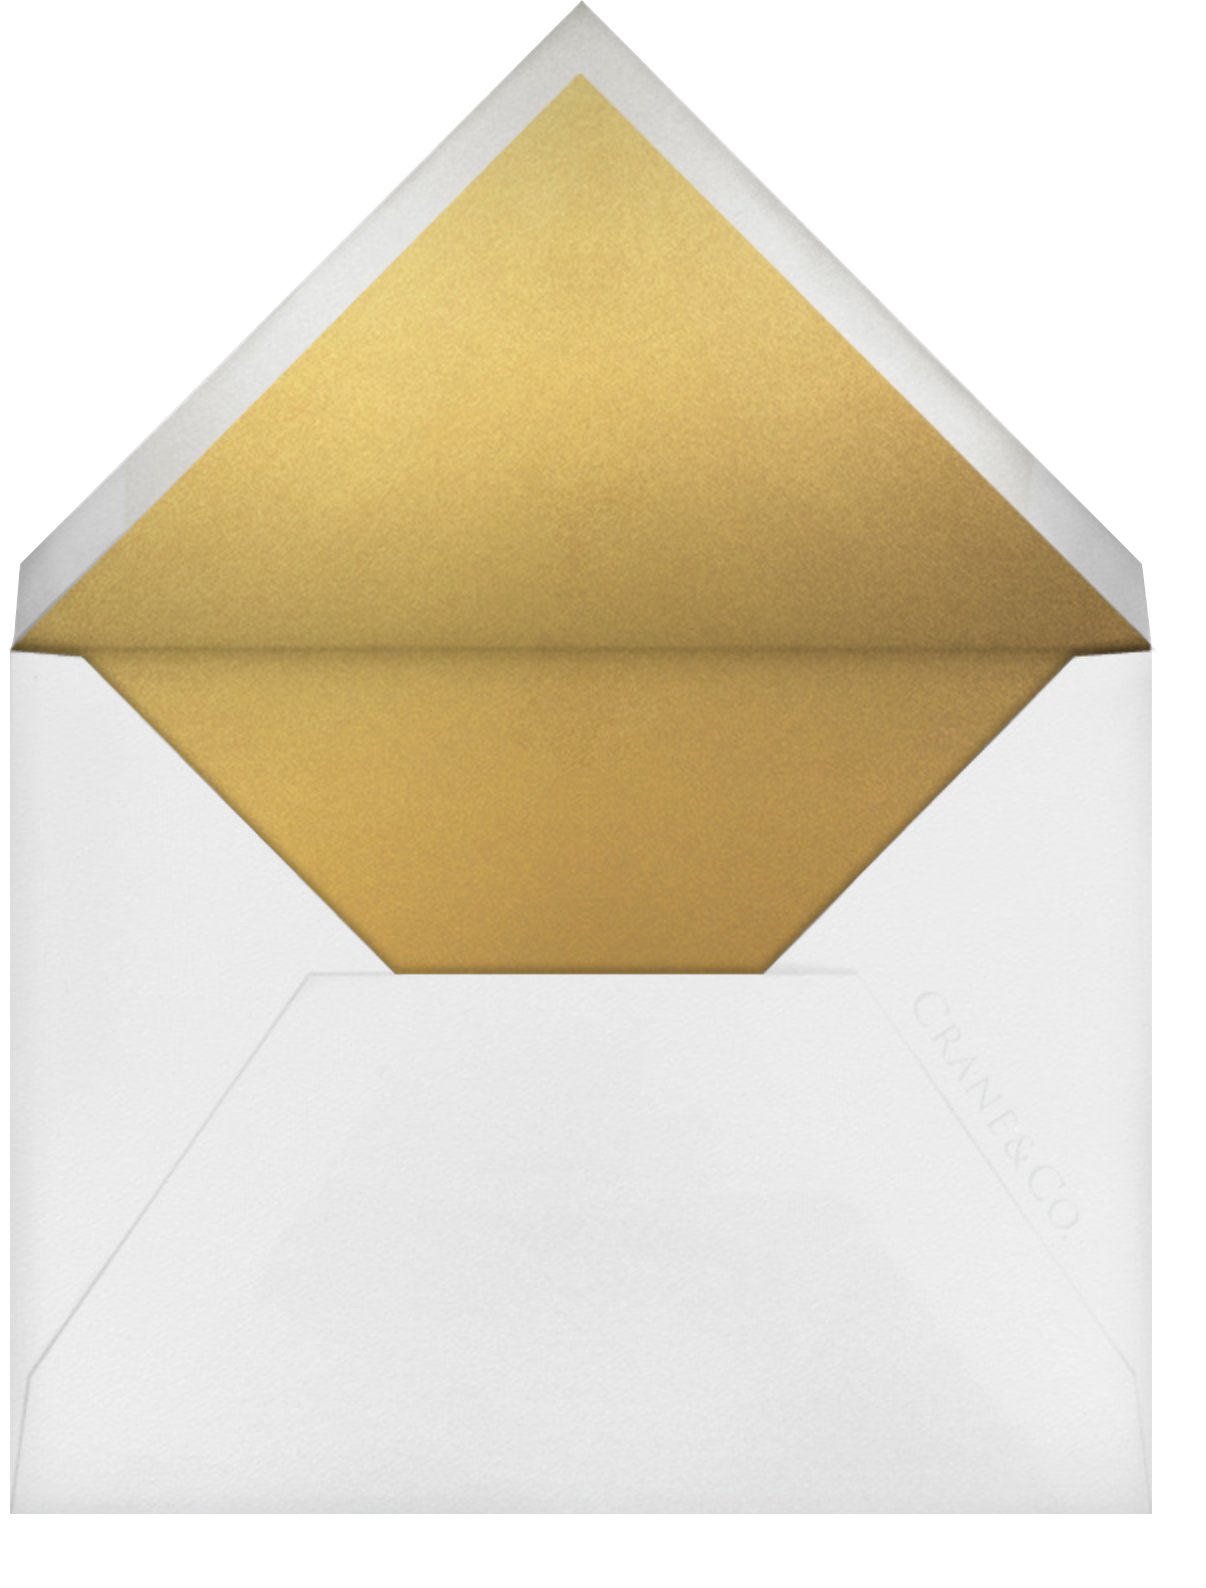 Editorial I (Stationery) - Gold - Paperless Post - Personalized stationery - envelope back